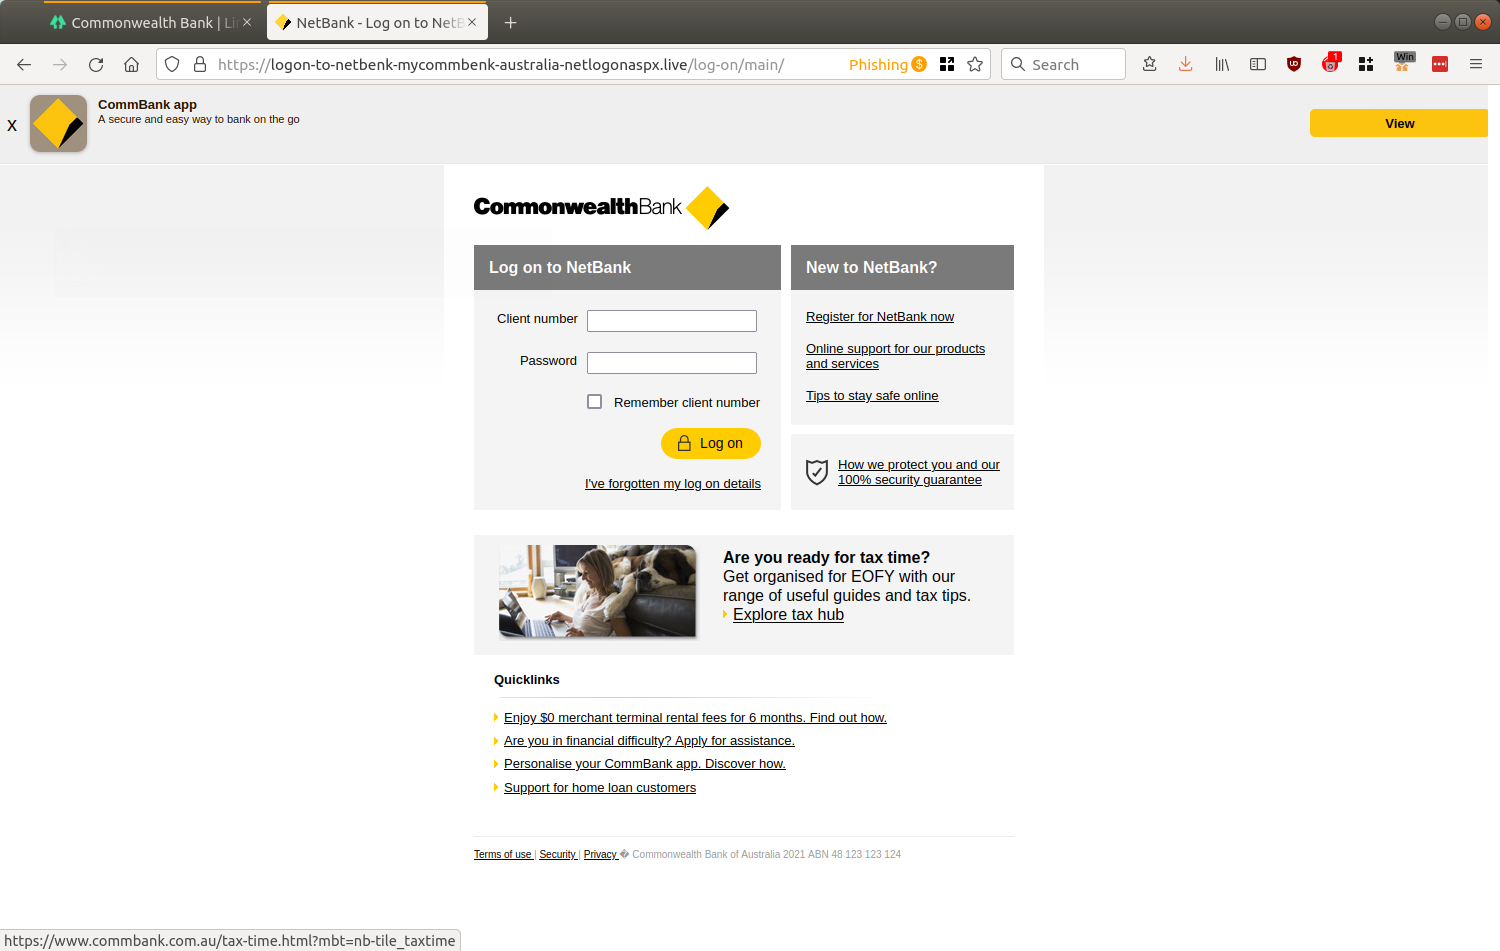 NetBank - Log on to NetBank - Enjoy simple and secure online banking from Commonwealth Bank — Mozilla Firefox_599